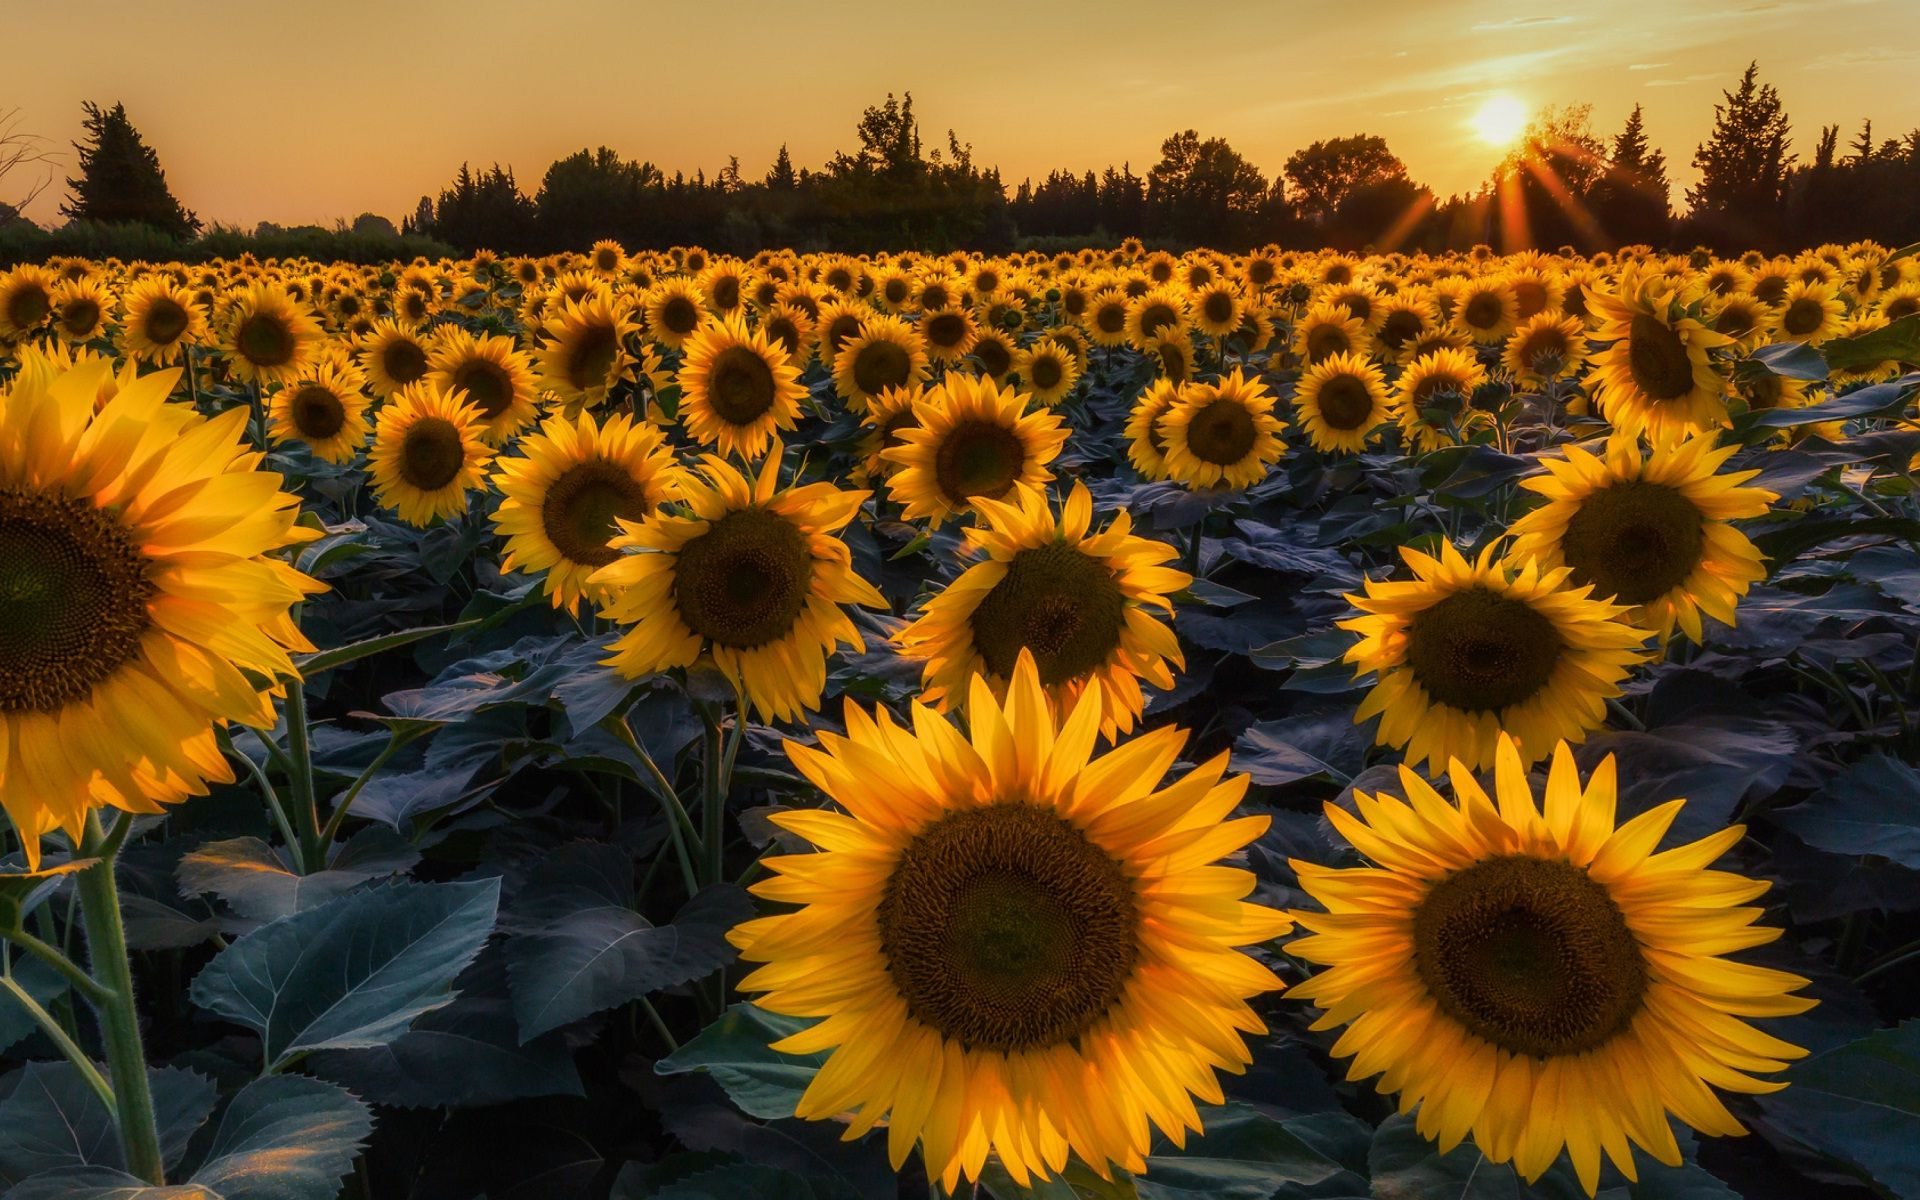 summer sunflowers wallpaper 1920×1200 images of sunflowers